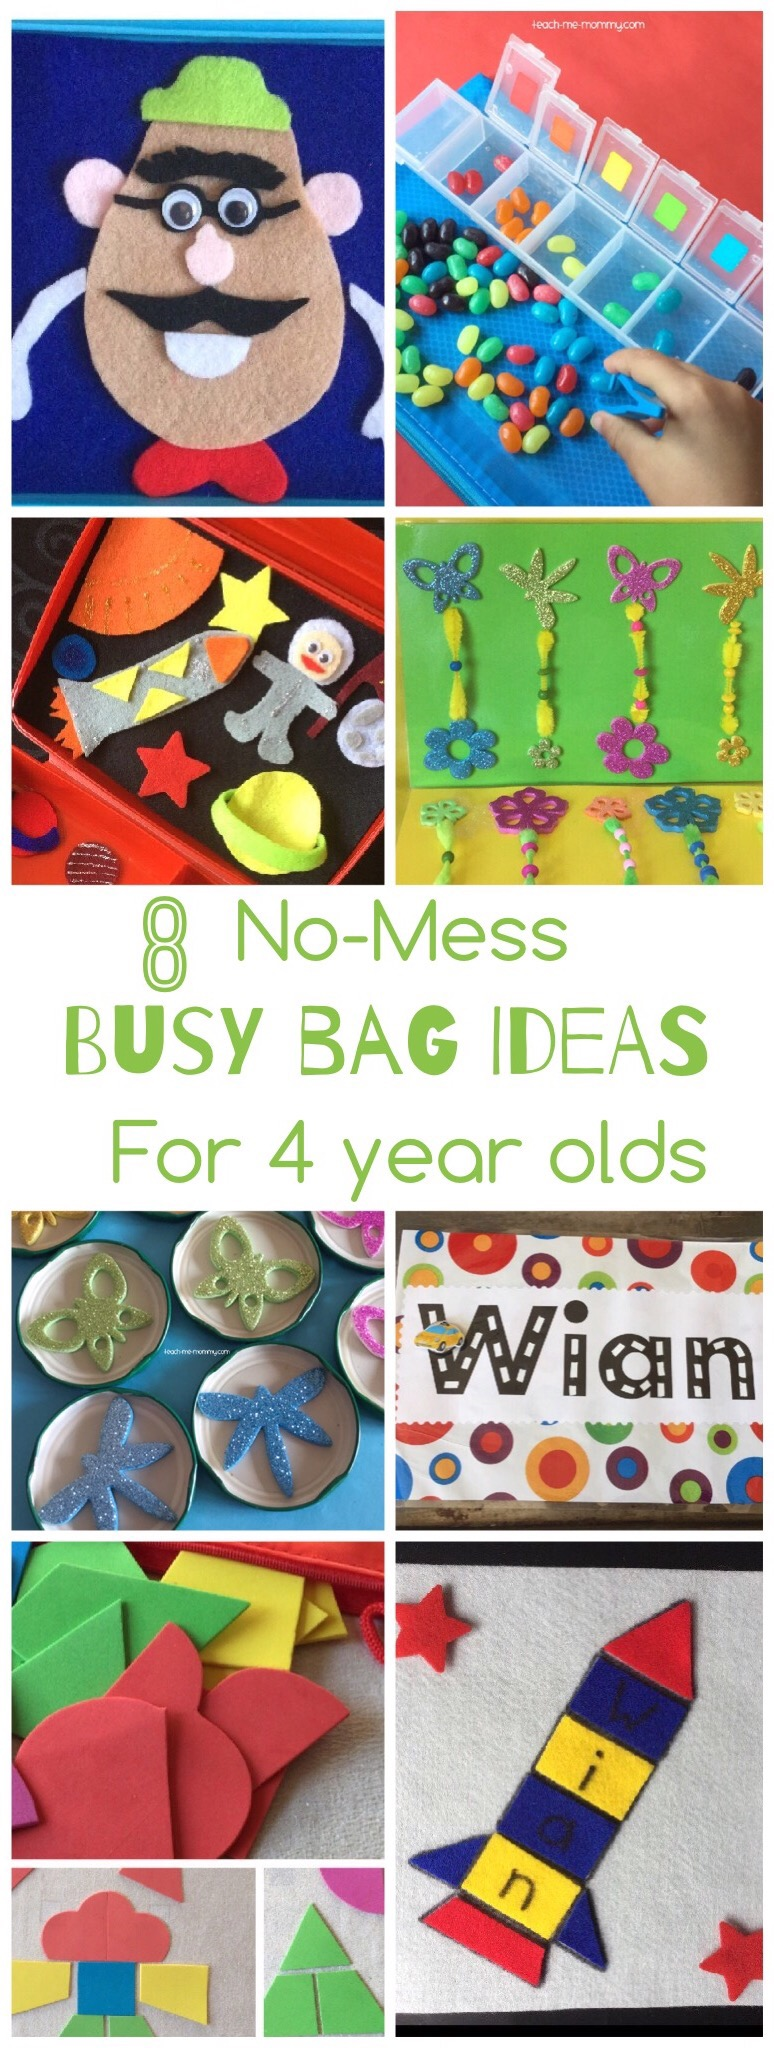 No-mess Busy bags for 4 year olds